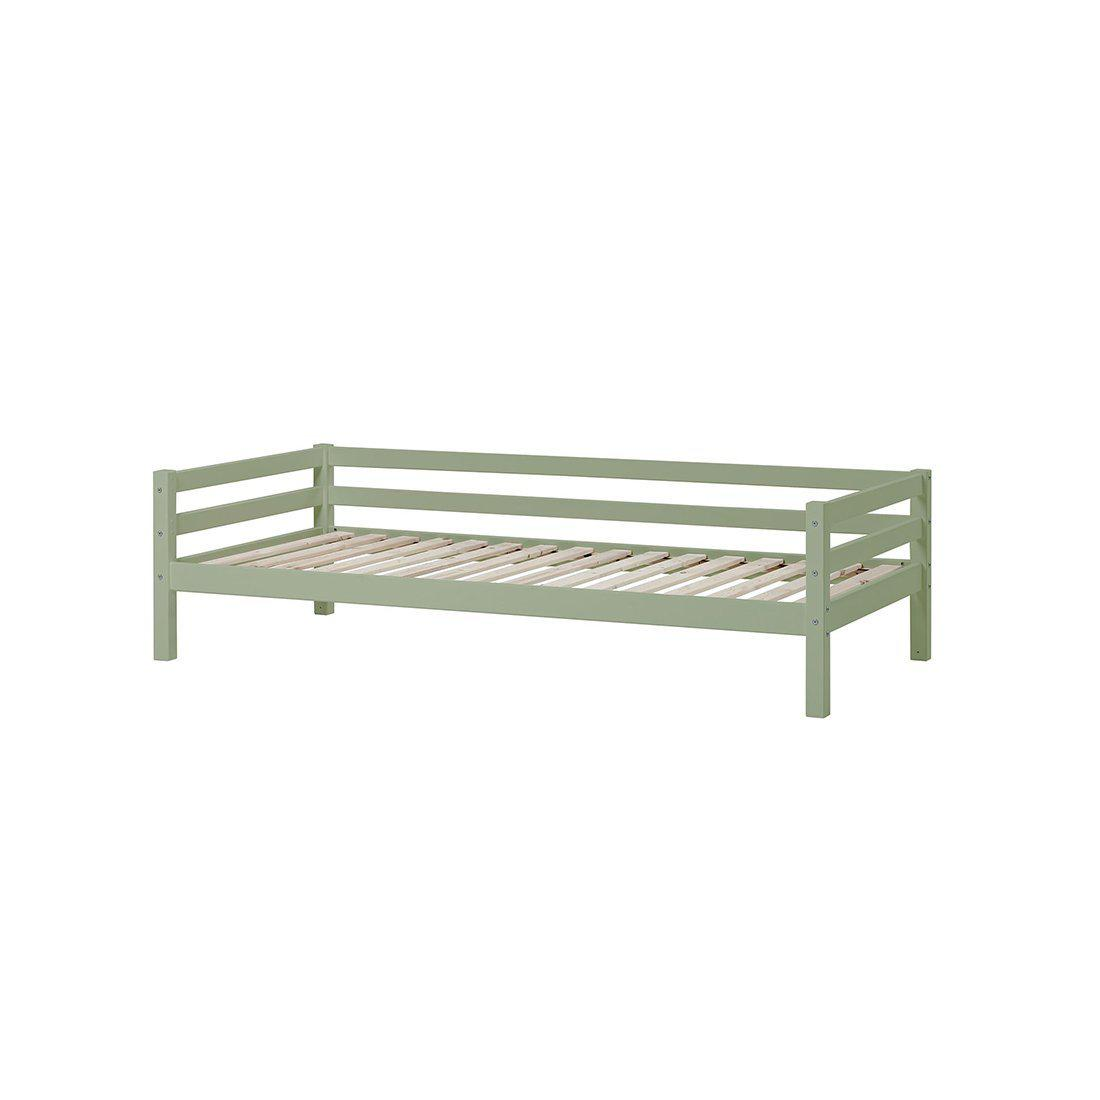 Image of   Hoppekids BASIC My Color Delbar Juniorseng - 90x200 cm - Pale Green